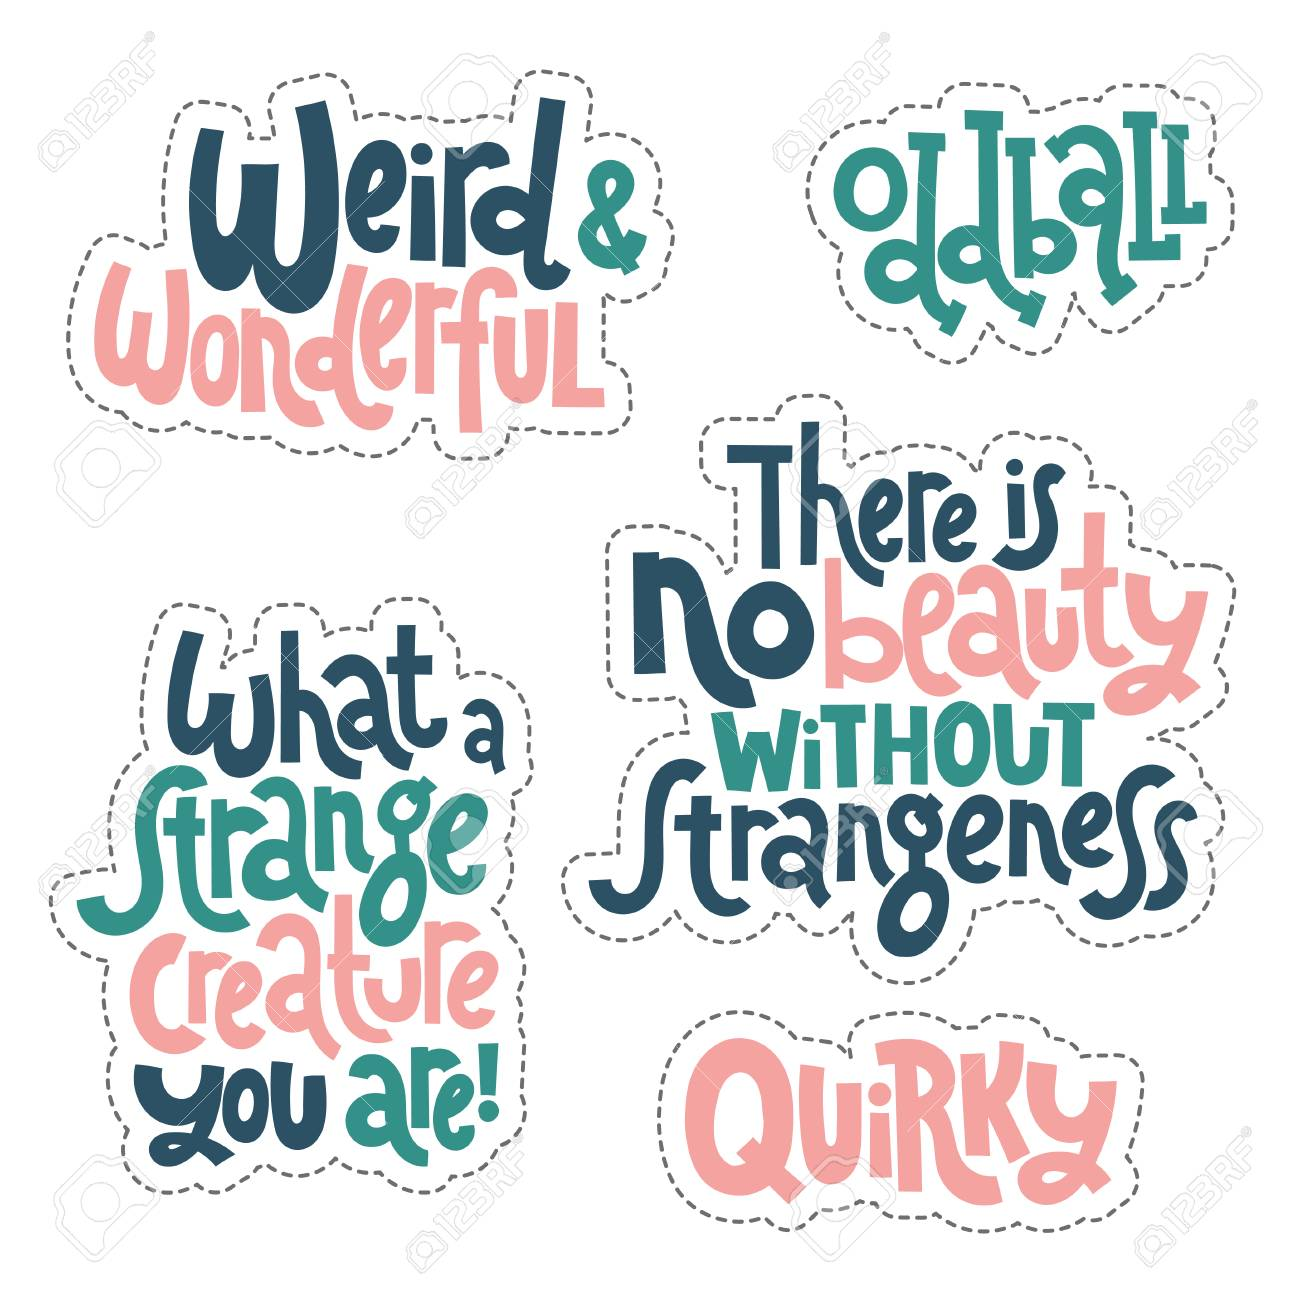 Vector weird and beautiful sticker set design template with hand drawn vector lettering